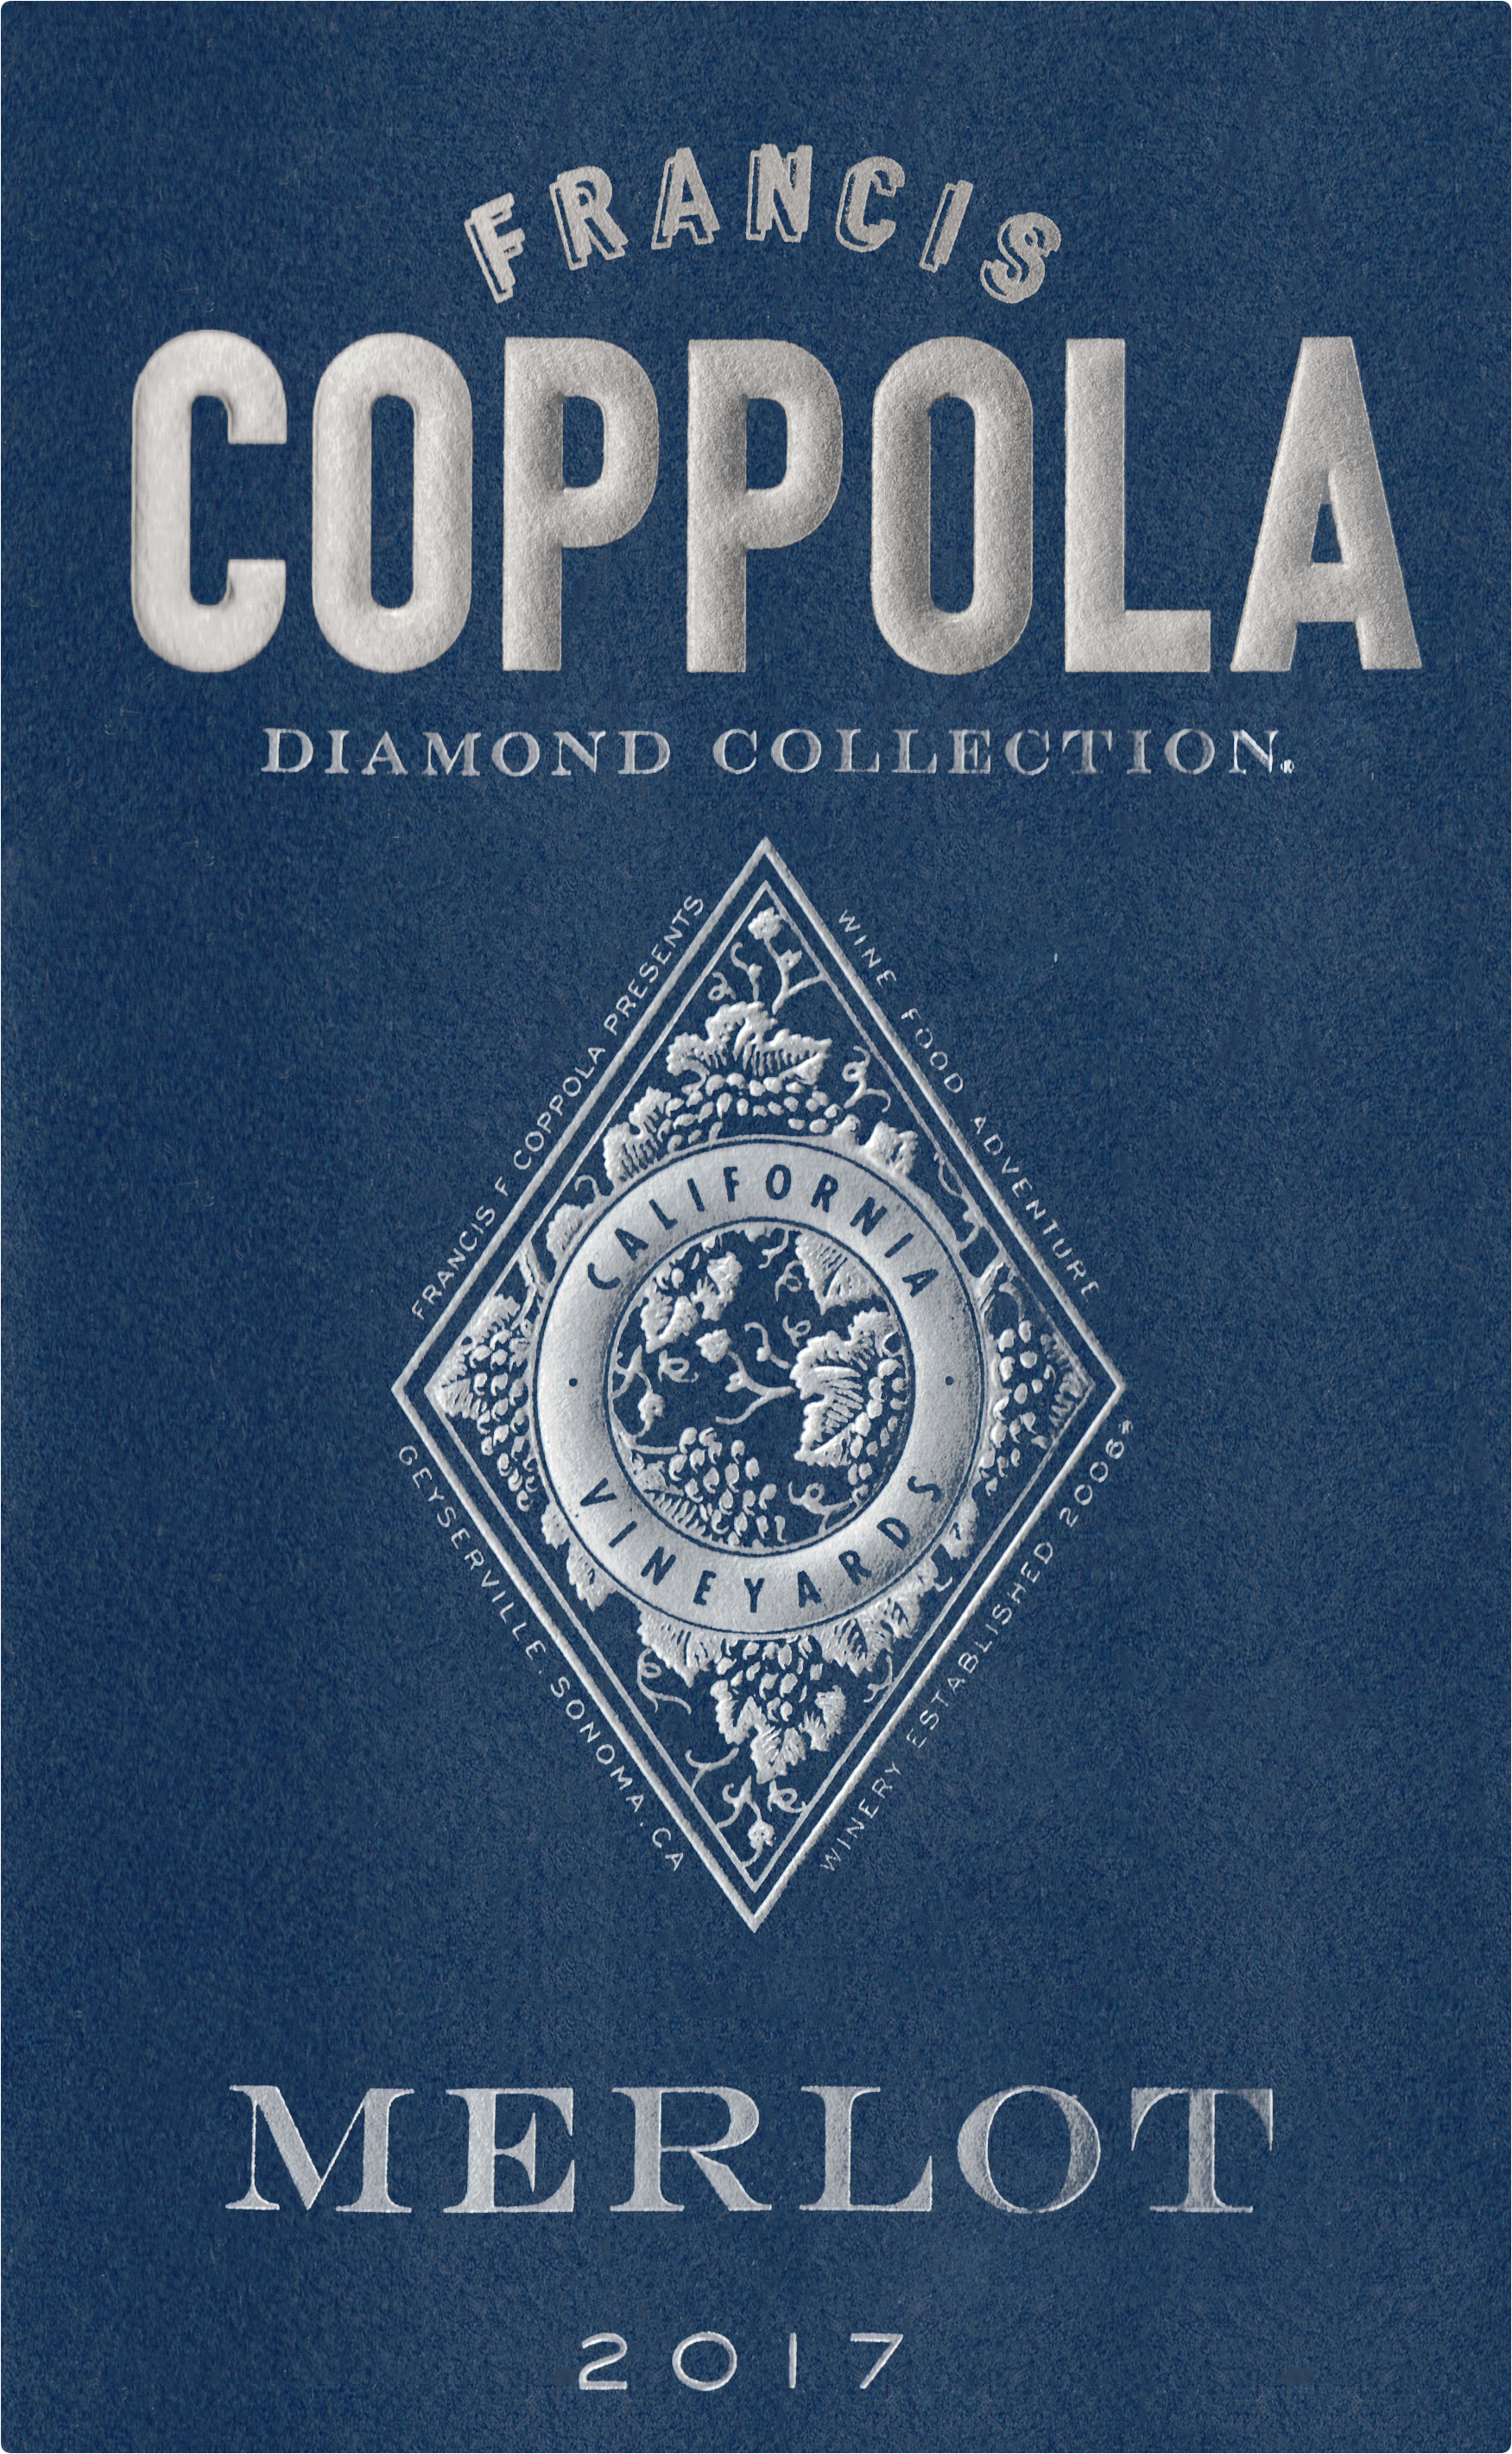 Coppola Diamond Merlot 2017